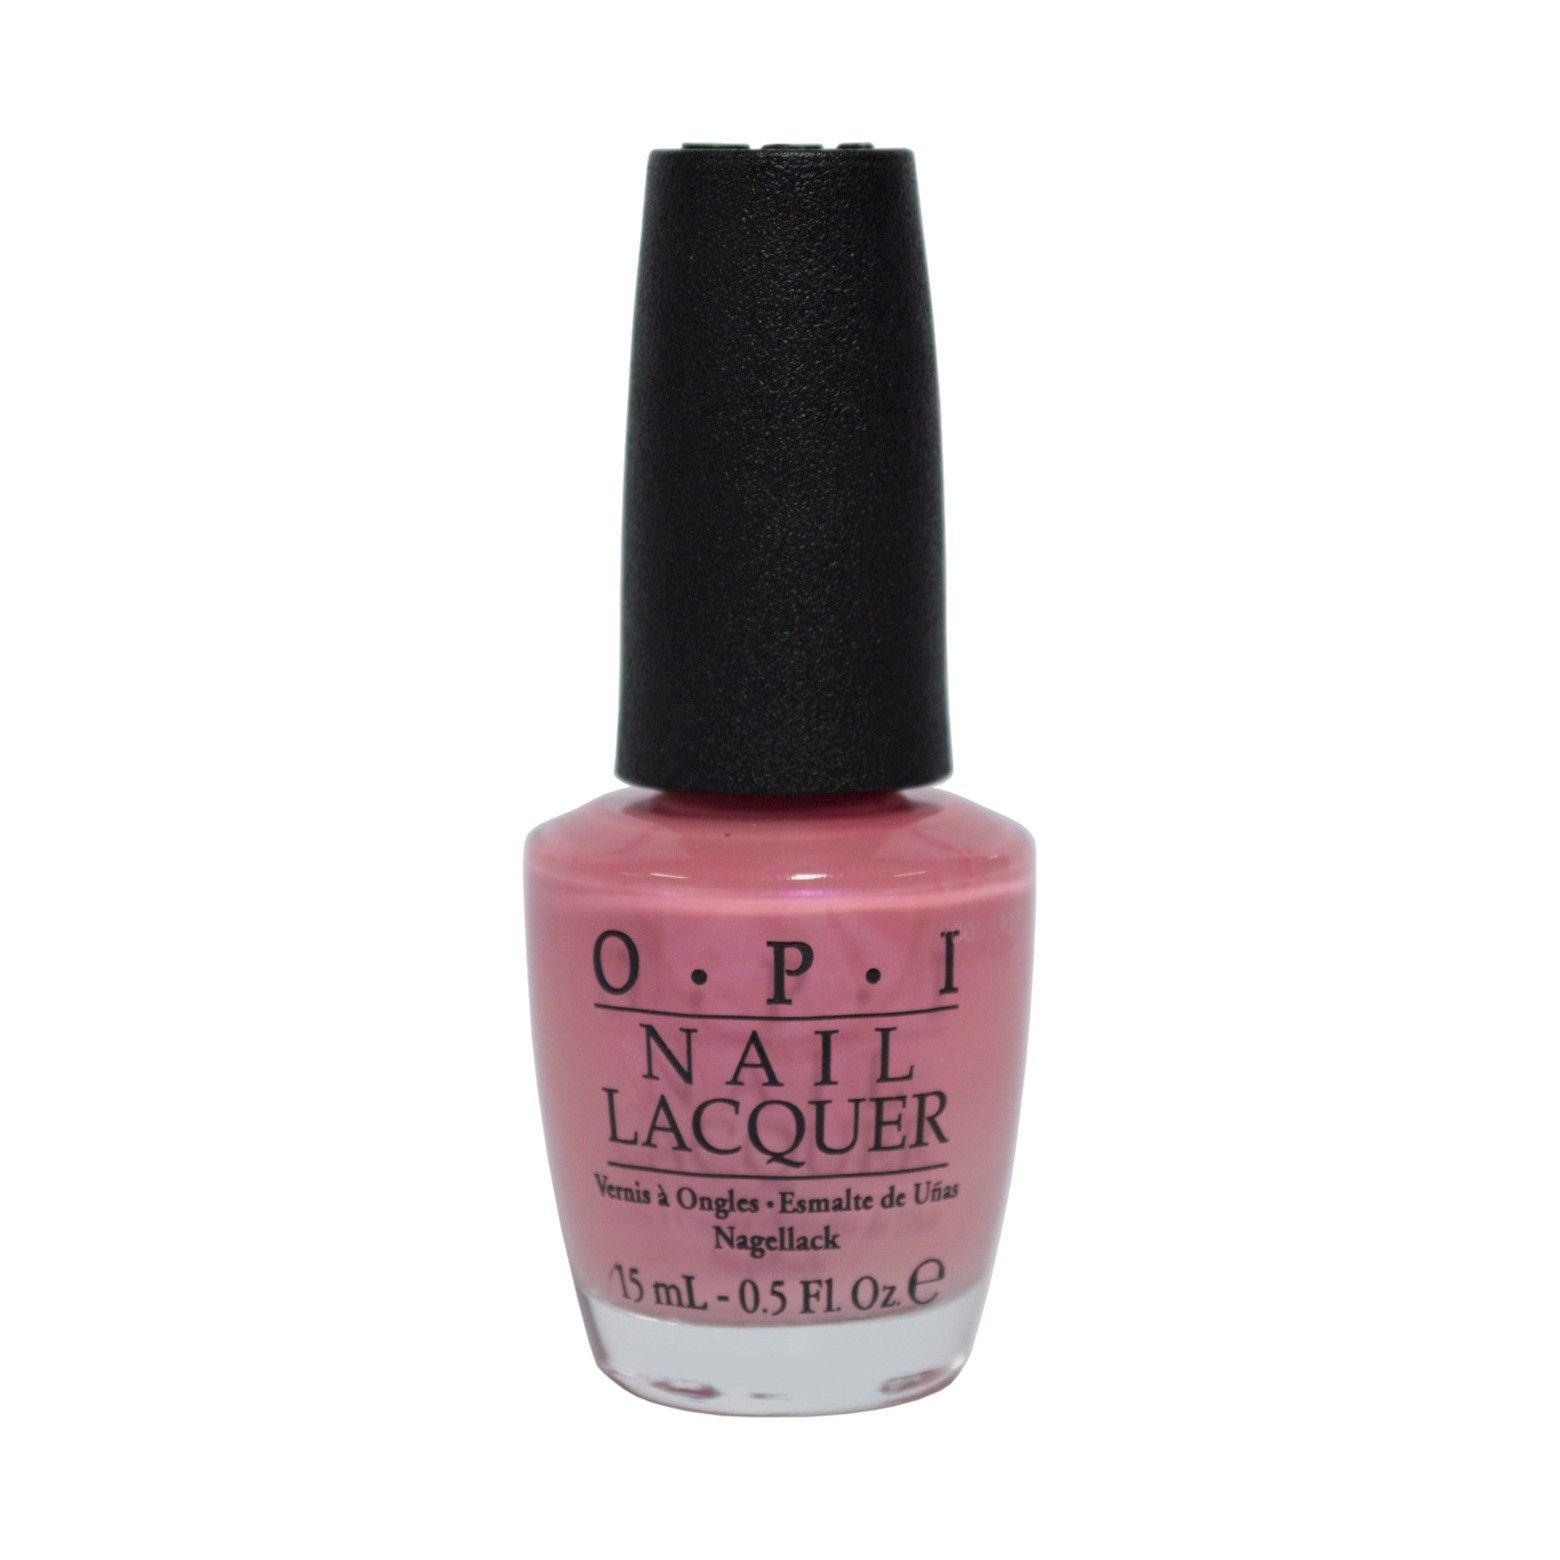 OPI Nail Lacquer is considered one of the most durable and longest ...